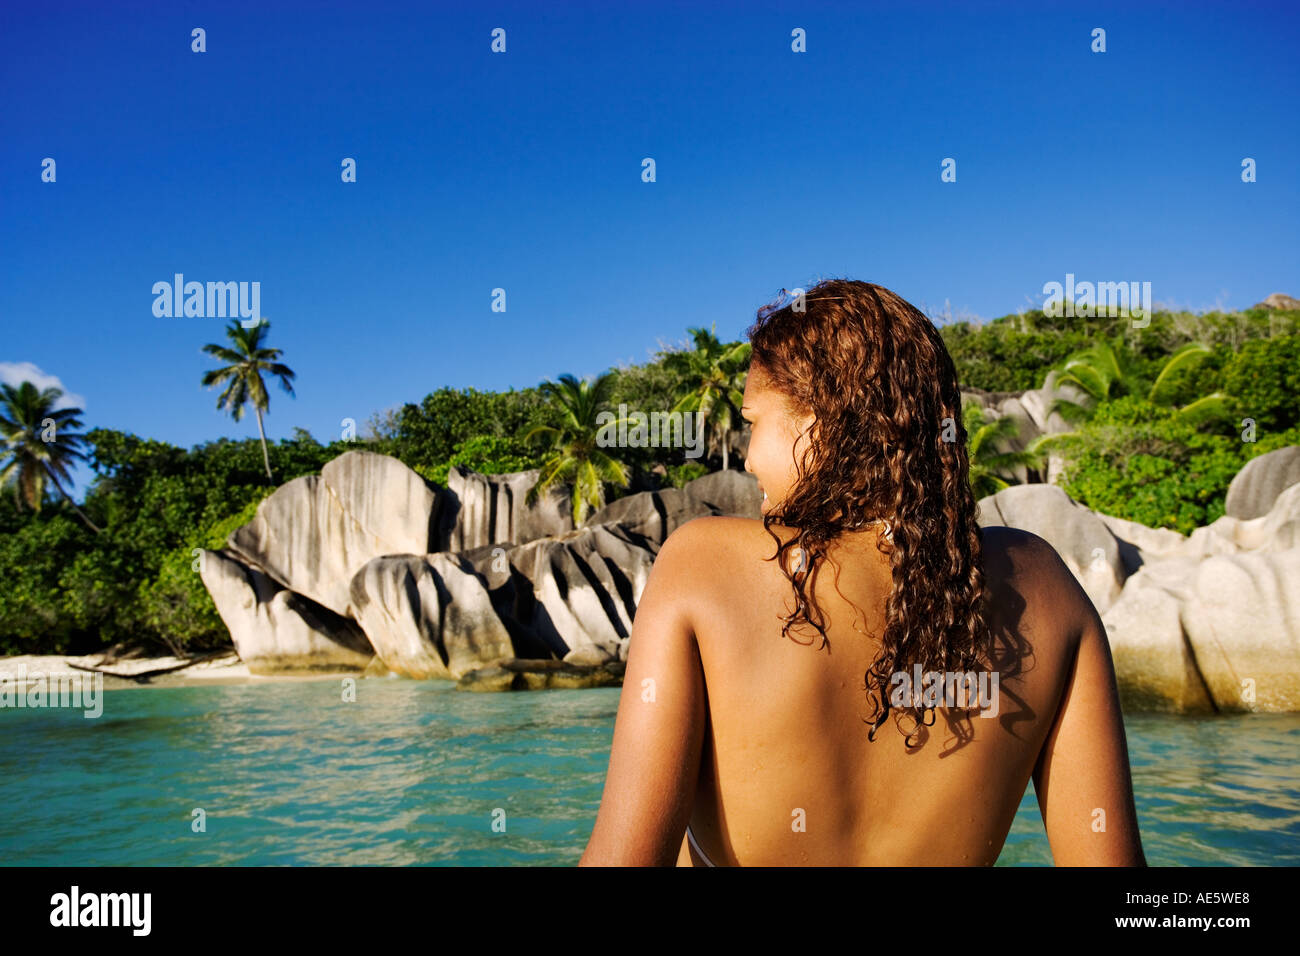 Woman relaxing on boat Granite boulders in the background Anse Source d Argent beach La Digue Island Seychelles - Stock Image